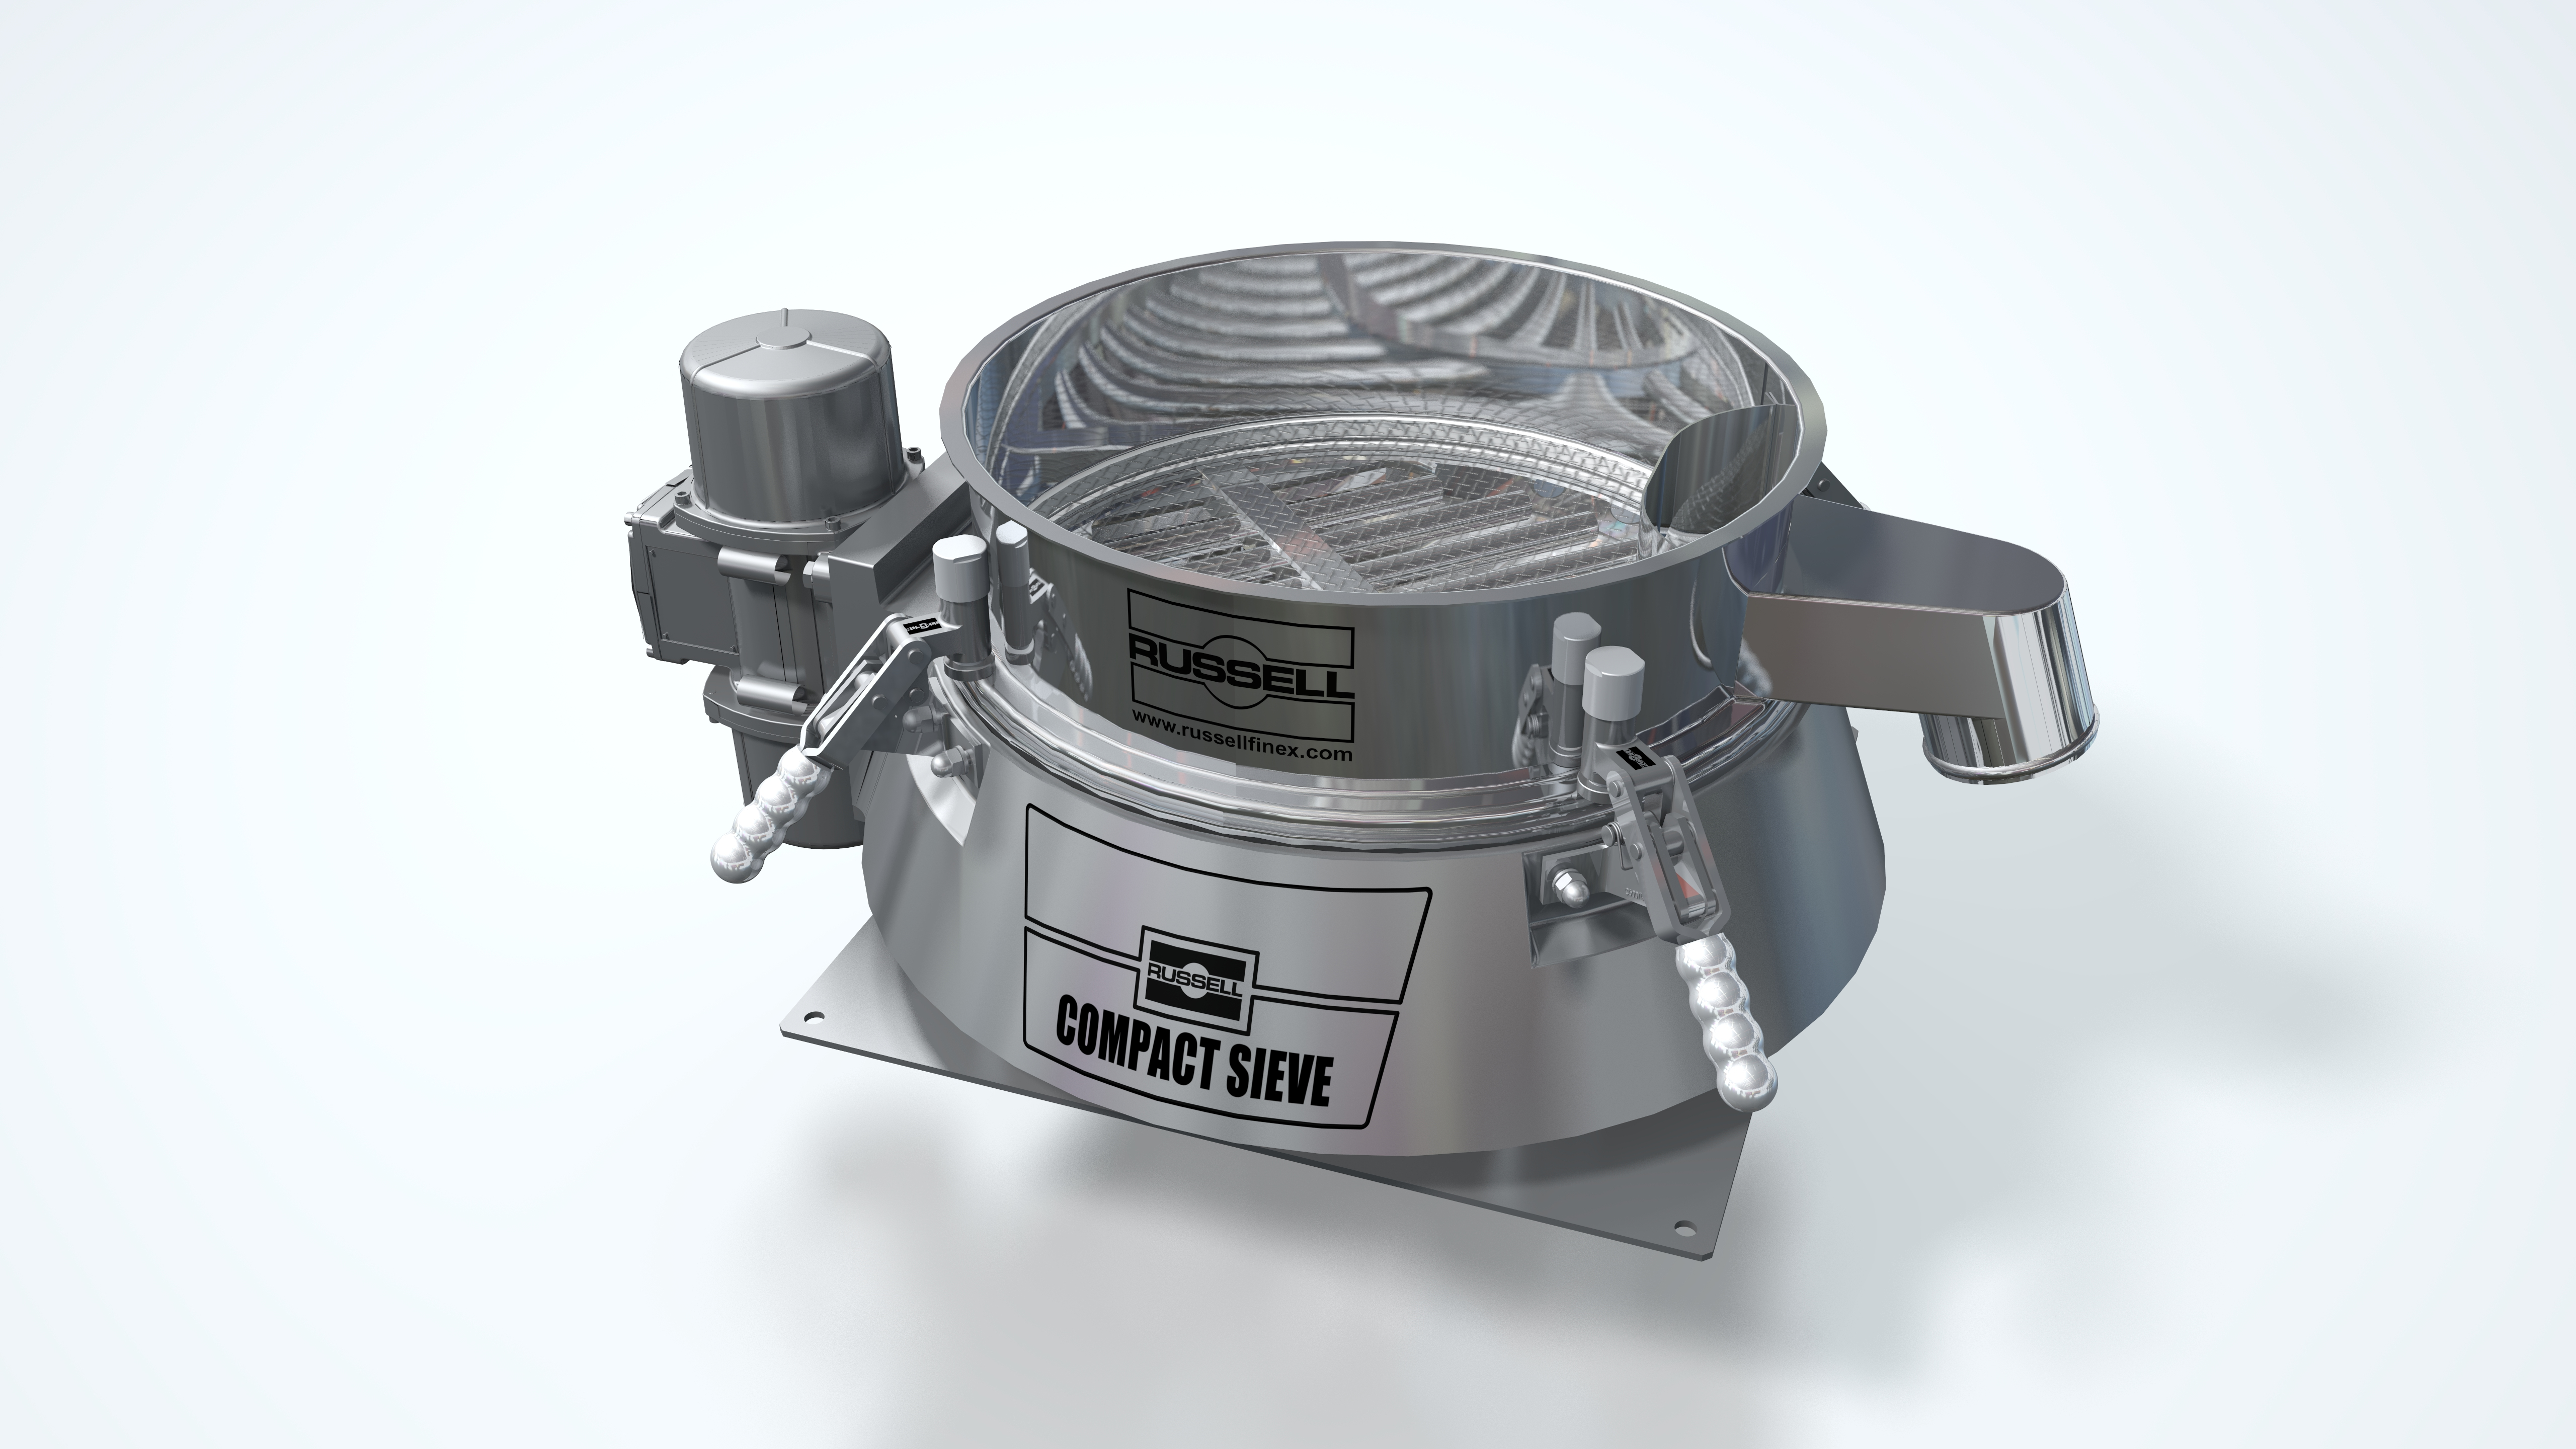 Tamiseur vibrant Russell Compact Sieve®